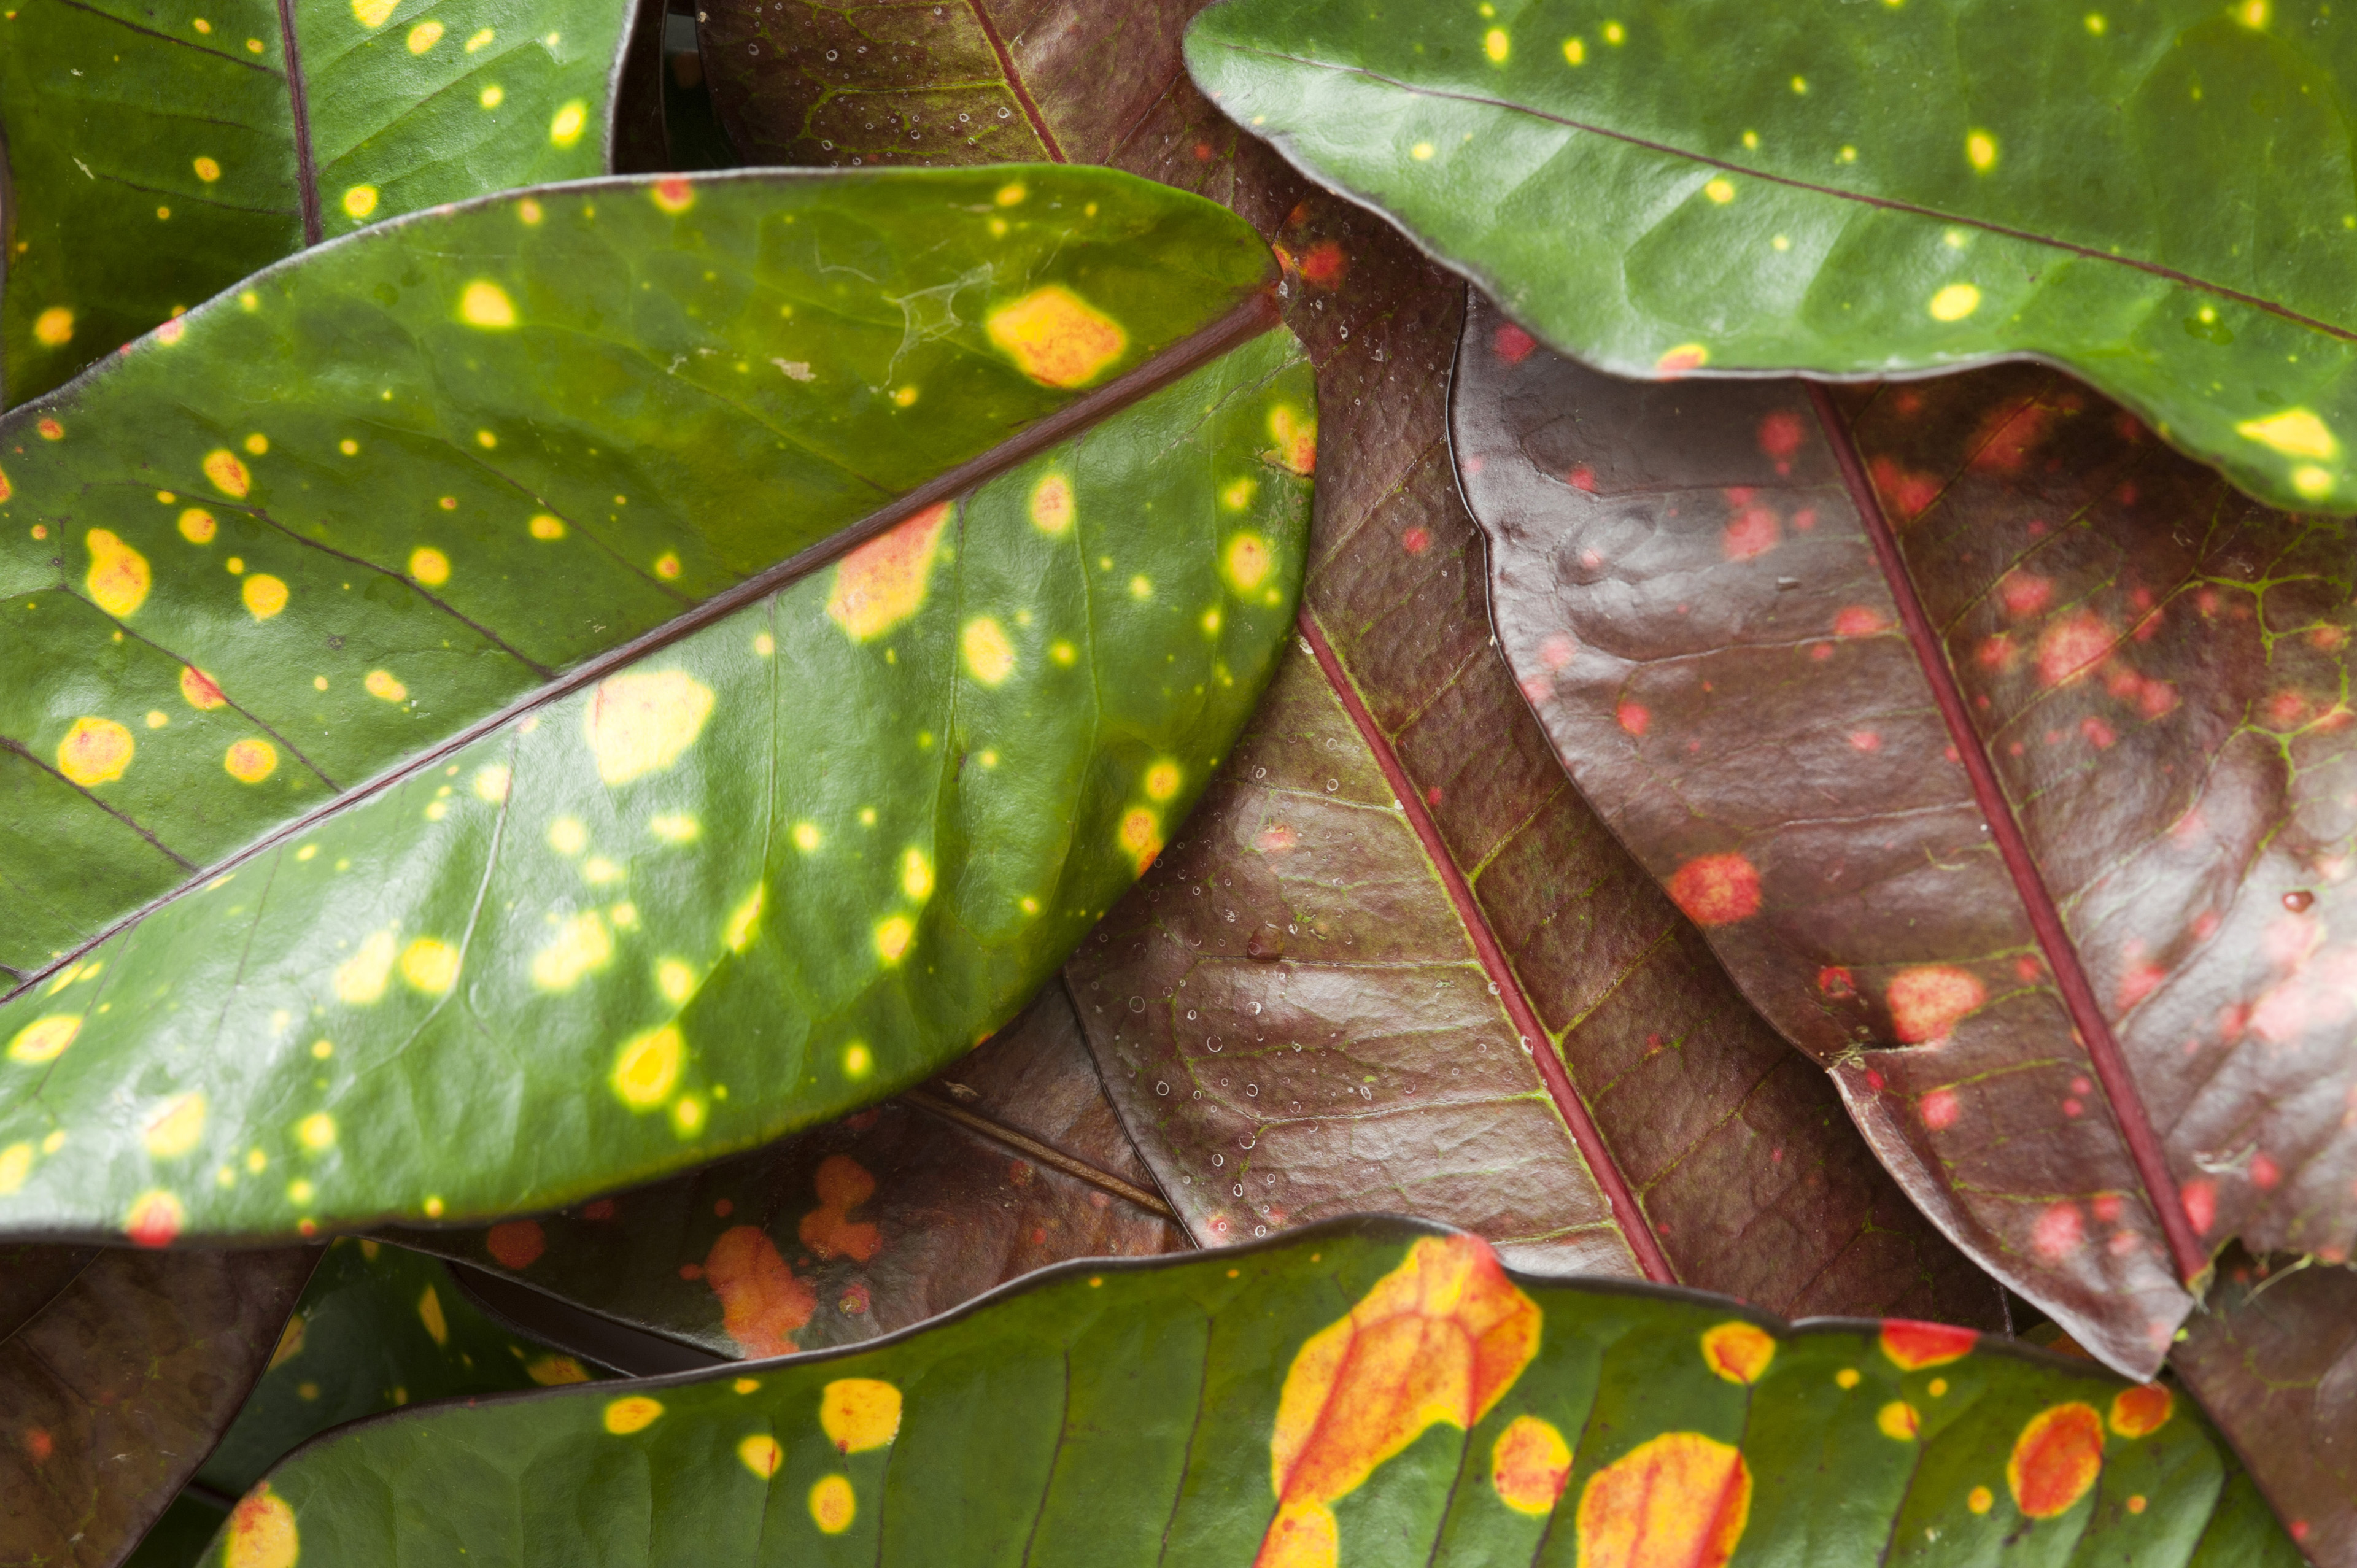 Colorful variegated leaves of the Croton plant with their natural green and yellow patterns, a popular garden plant for their ornamental leaves